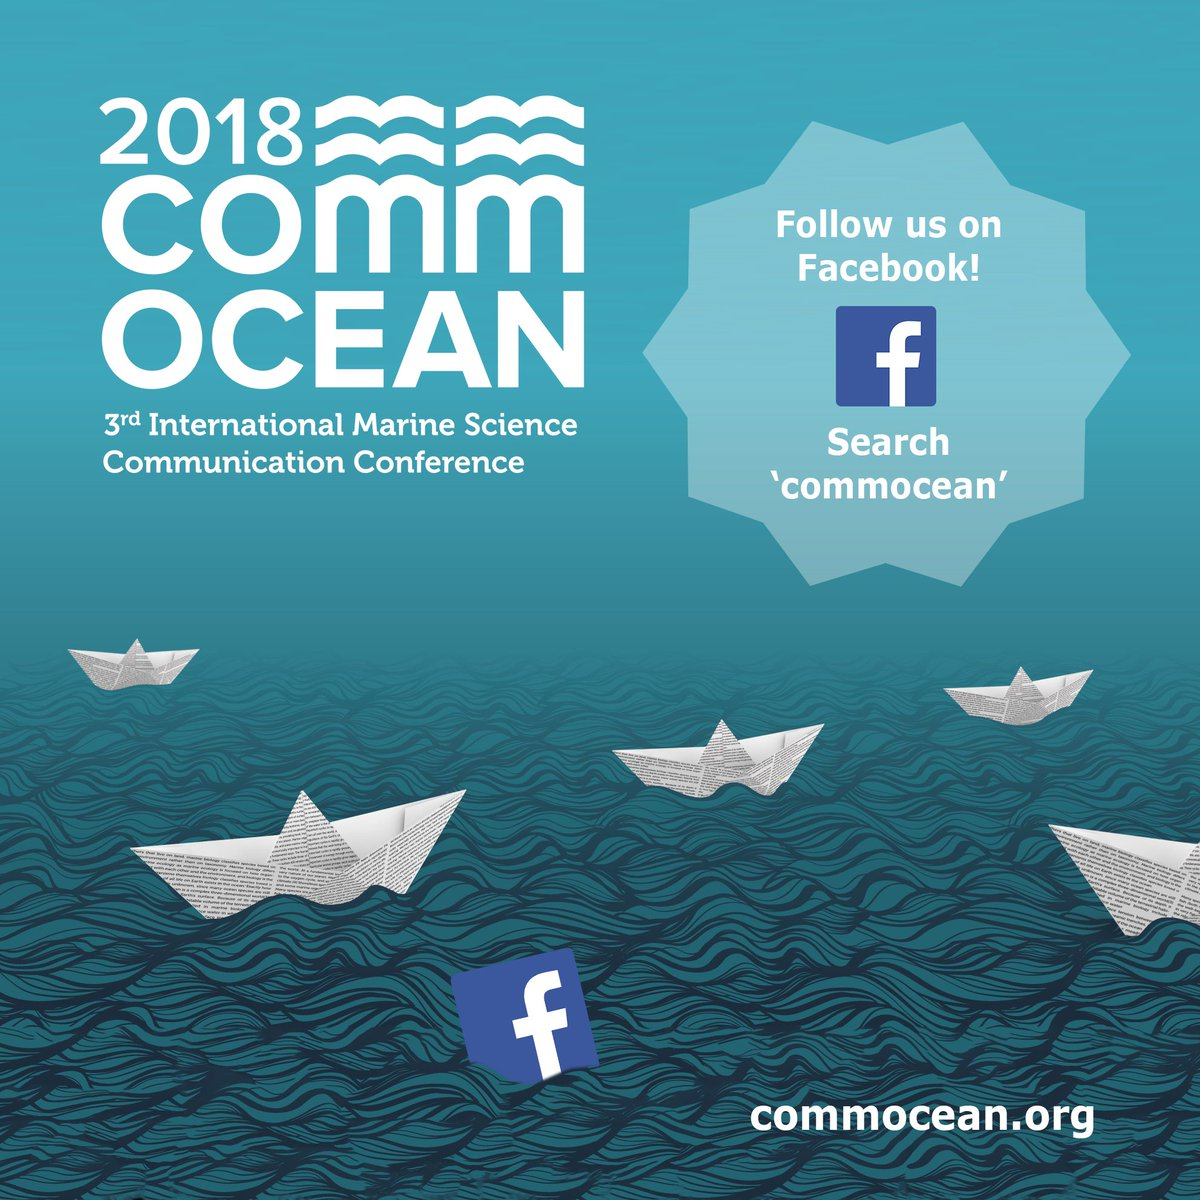 CommOCEAN Conference (@CommOceanConf) | Twitter